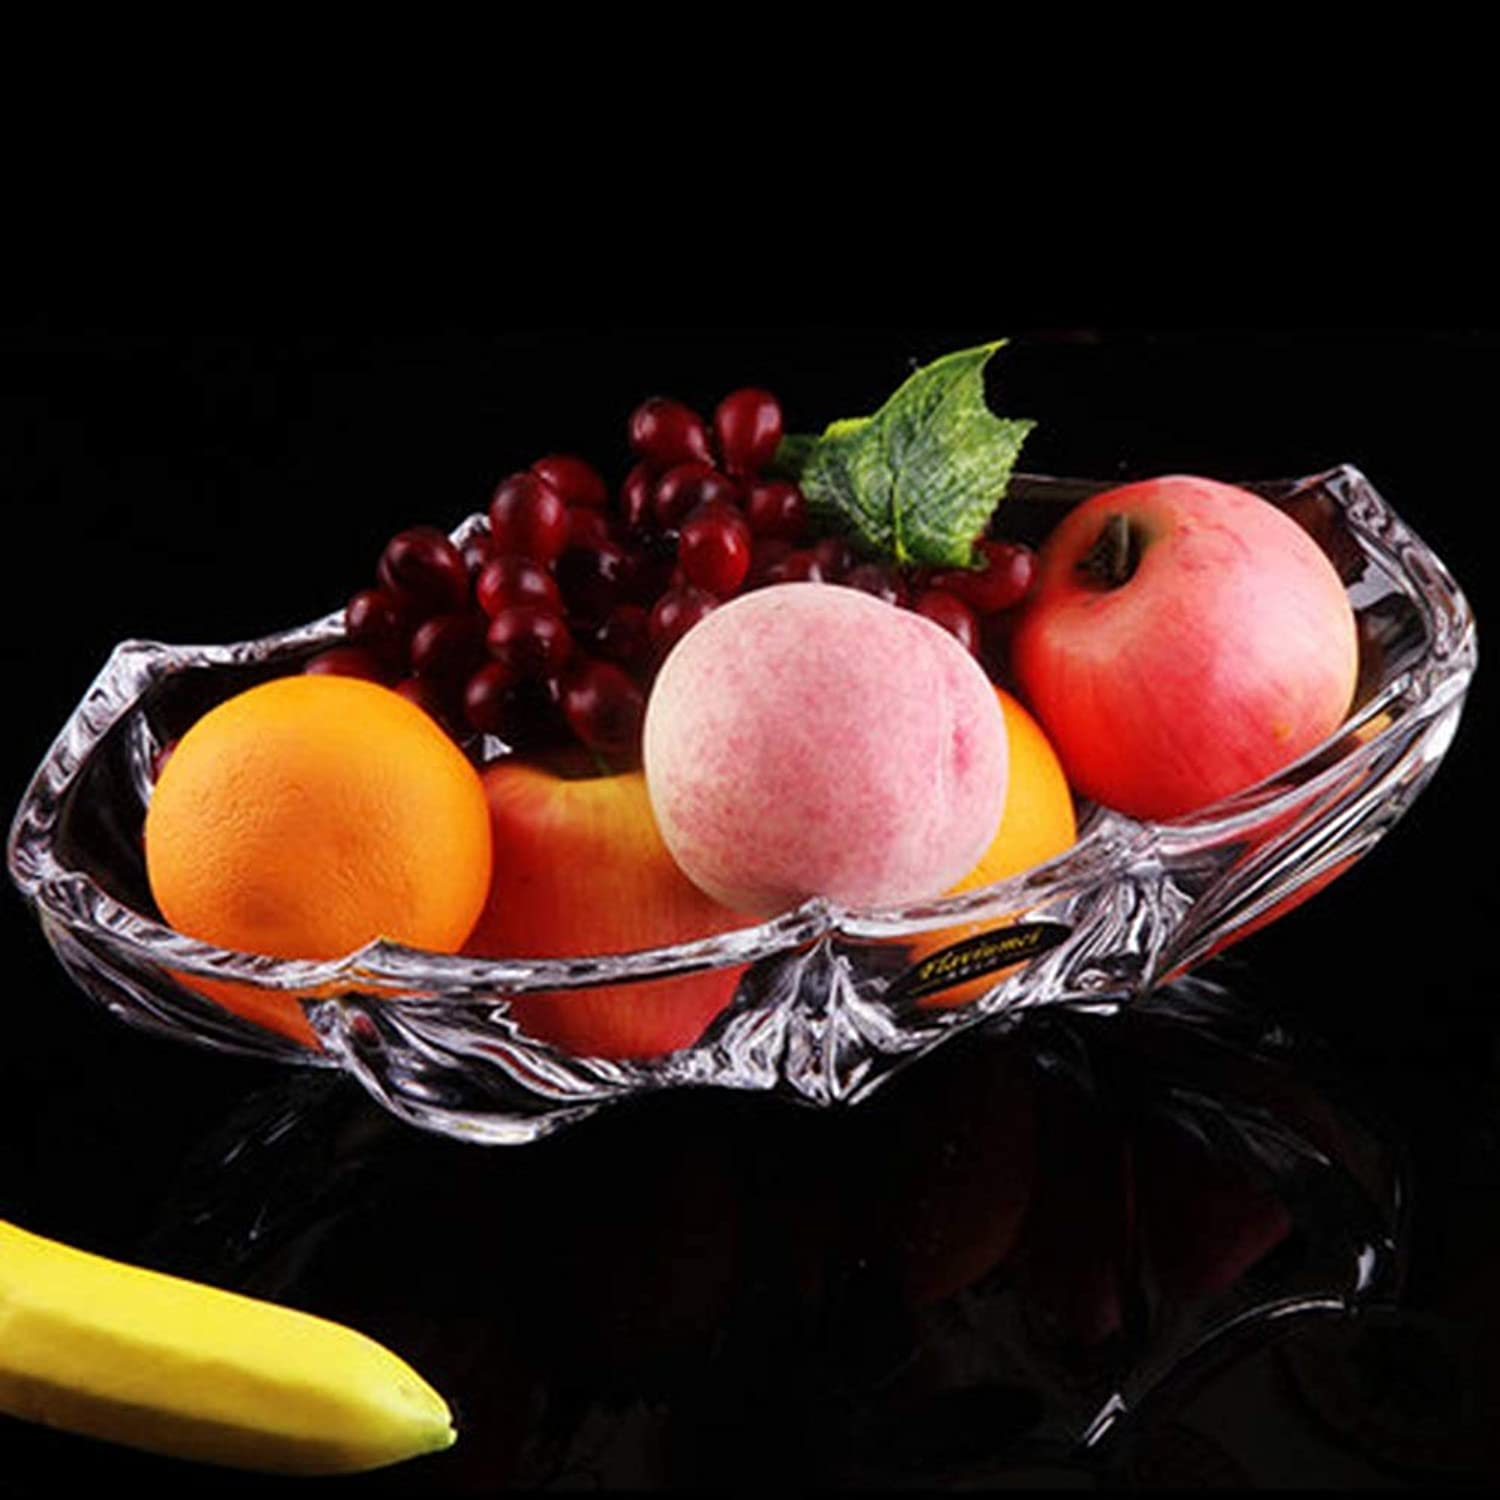 BEI-YI Assiette de fruits Assiette de fruits en verre simple Assiette de fruits Assiette de fruits Assiettes de fruits séchés Assiette de bonbons Assiette de fruits délicats Durable -64 Corbeille de f